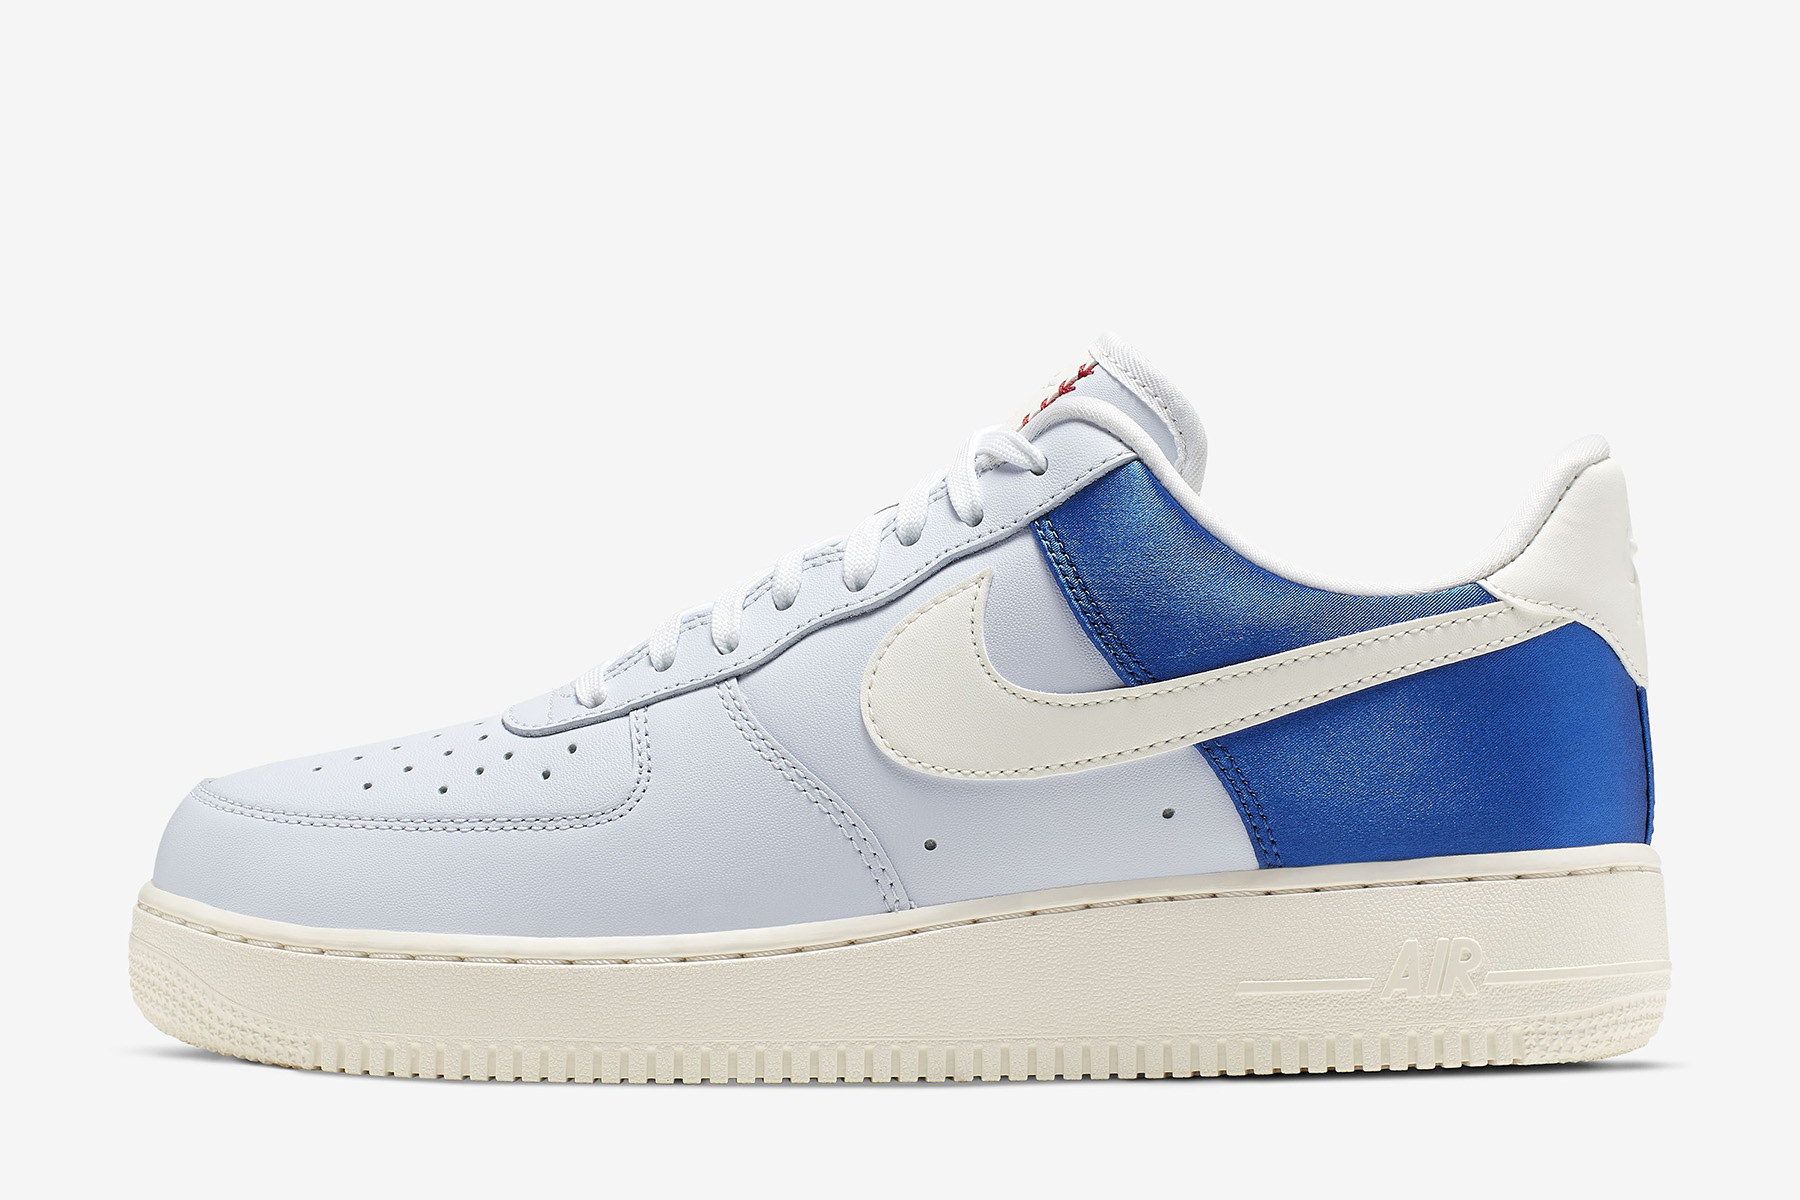 good 28141 4c4f4 Nike is currently releasing a collection of kicks under the City Pride that  draw inspiration from Major League Baseball teams. The collection includes  this ...